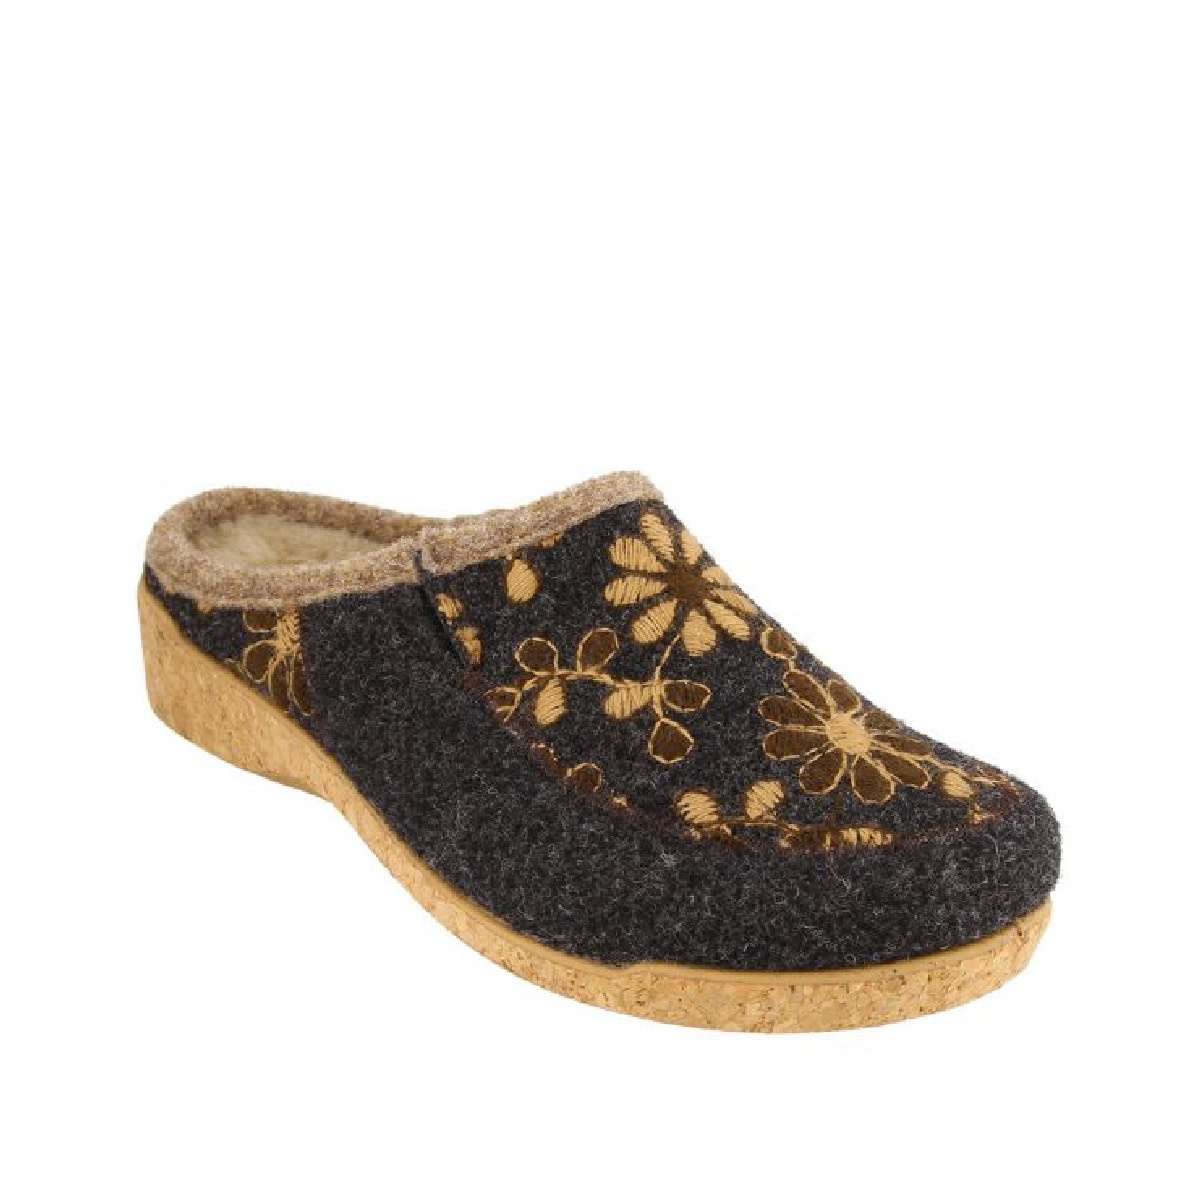 Taos Footwear Taos Women's Woolderness Charcoal